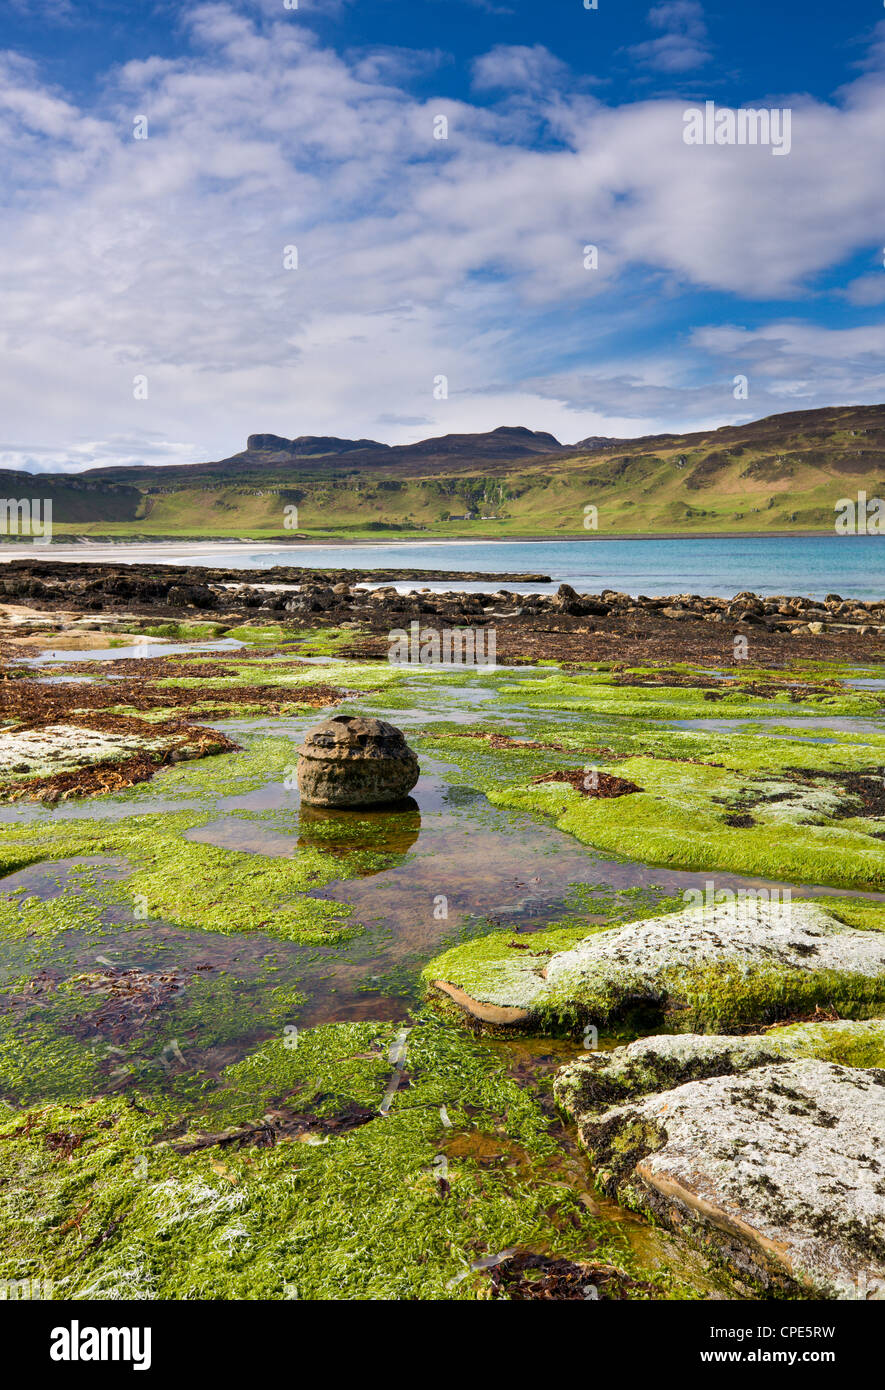 View across Laig Bay towards An Sgurr, Isle of Eigg, Inner Hebrides, Scotland, United Kingdom, Europe - Stock Image